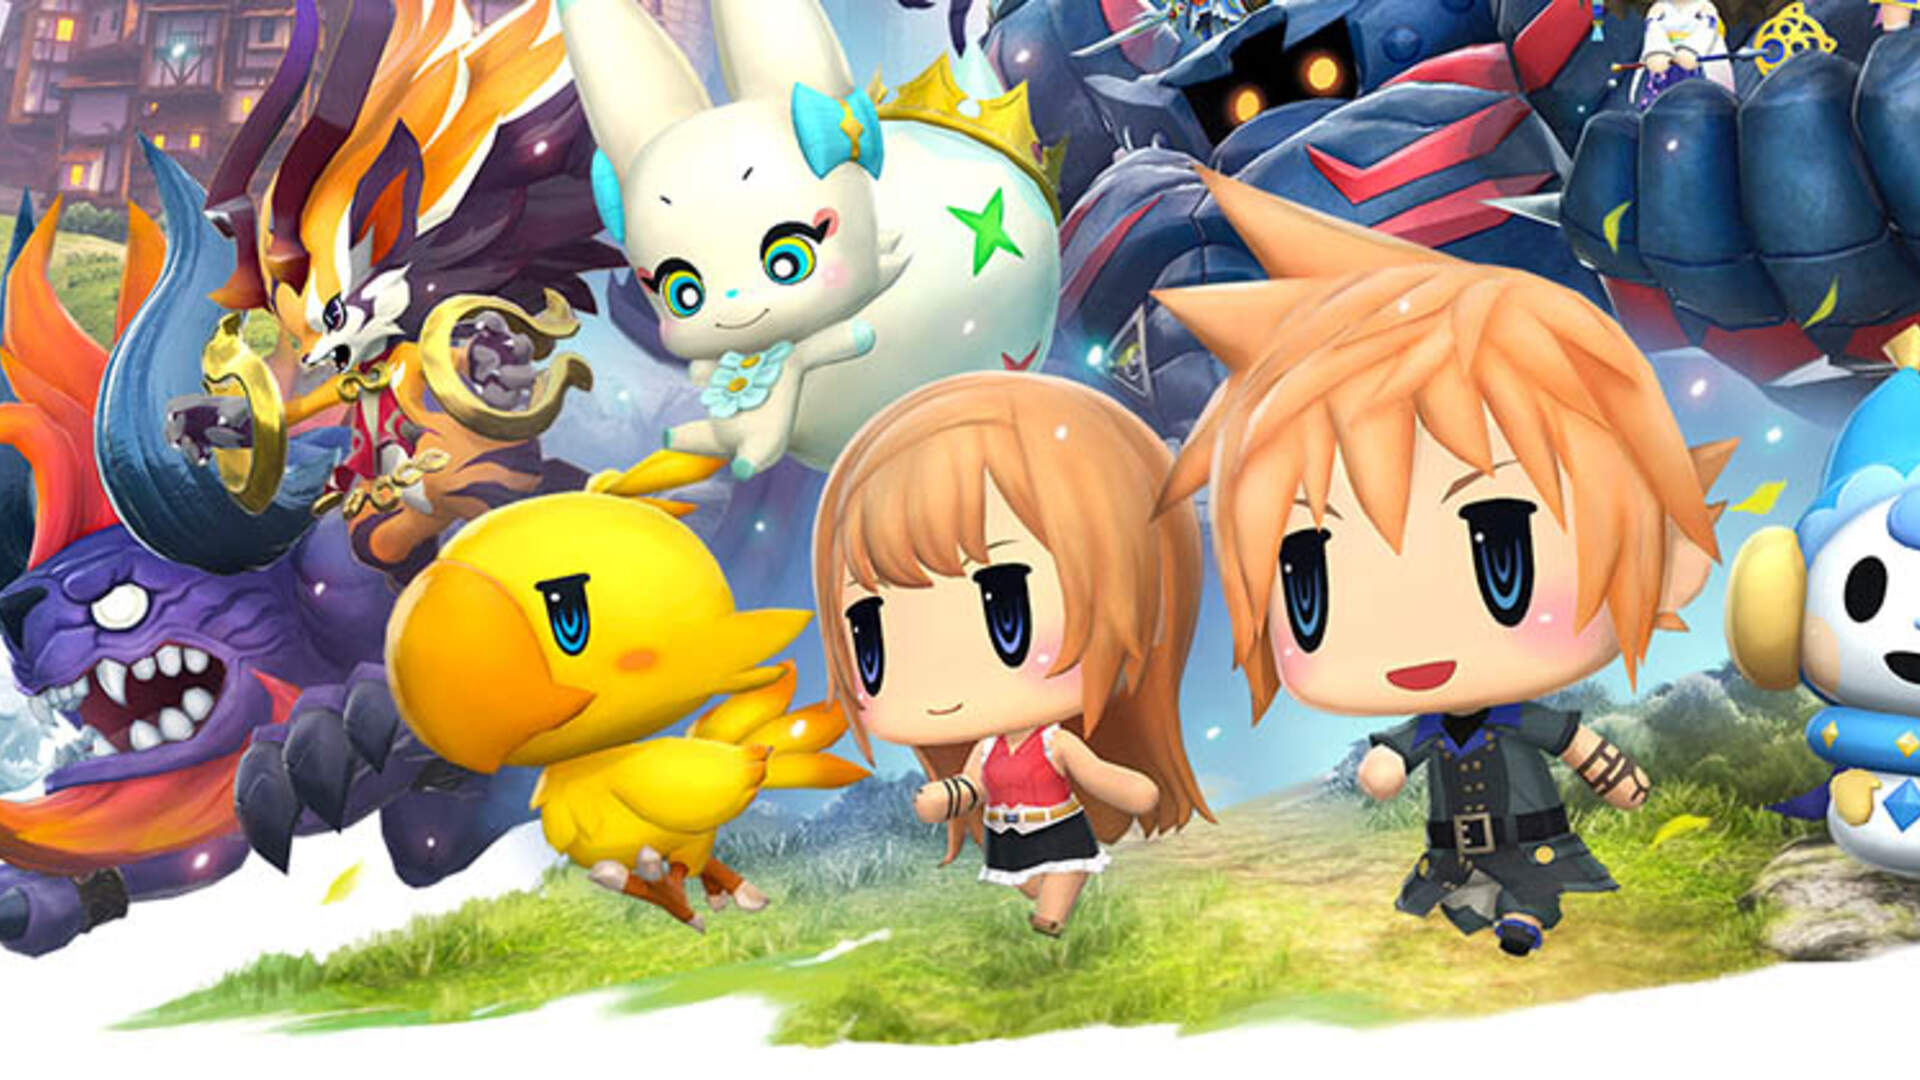 World of Final Fantasy Review-in-Progress: Day 1